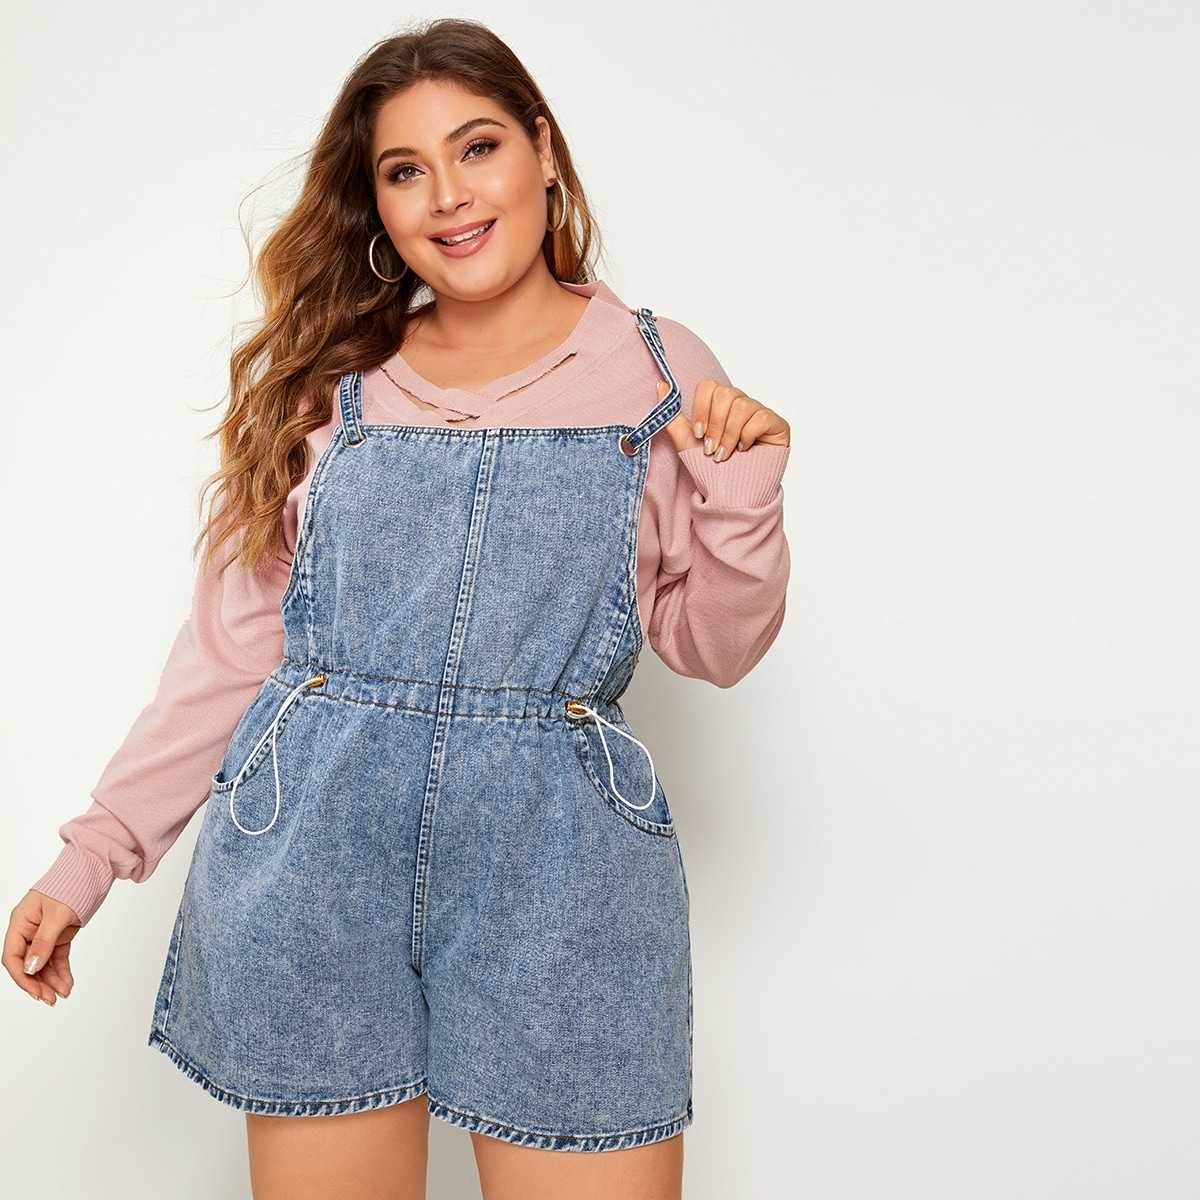 Plus Drawstring Waist Denim Overalls in Blue by ROMWE on GOOFASH